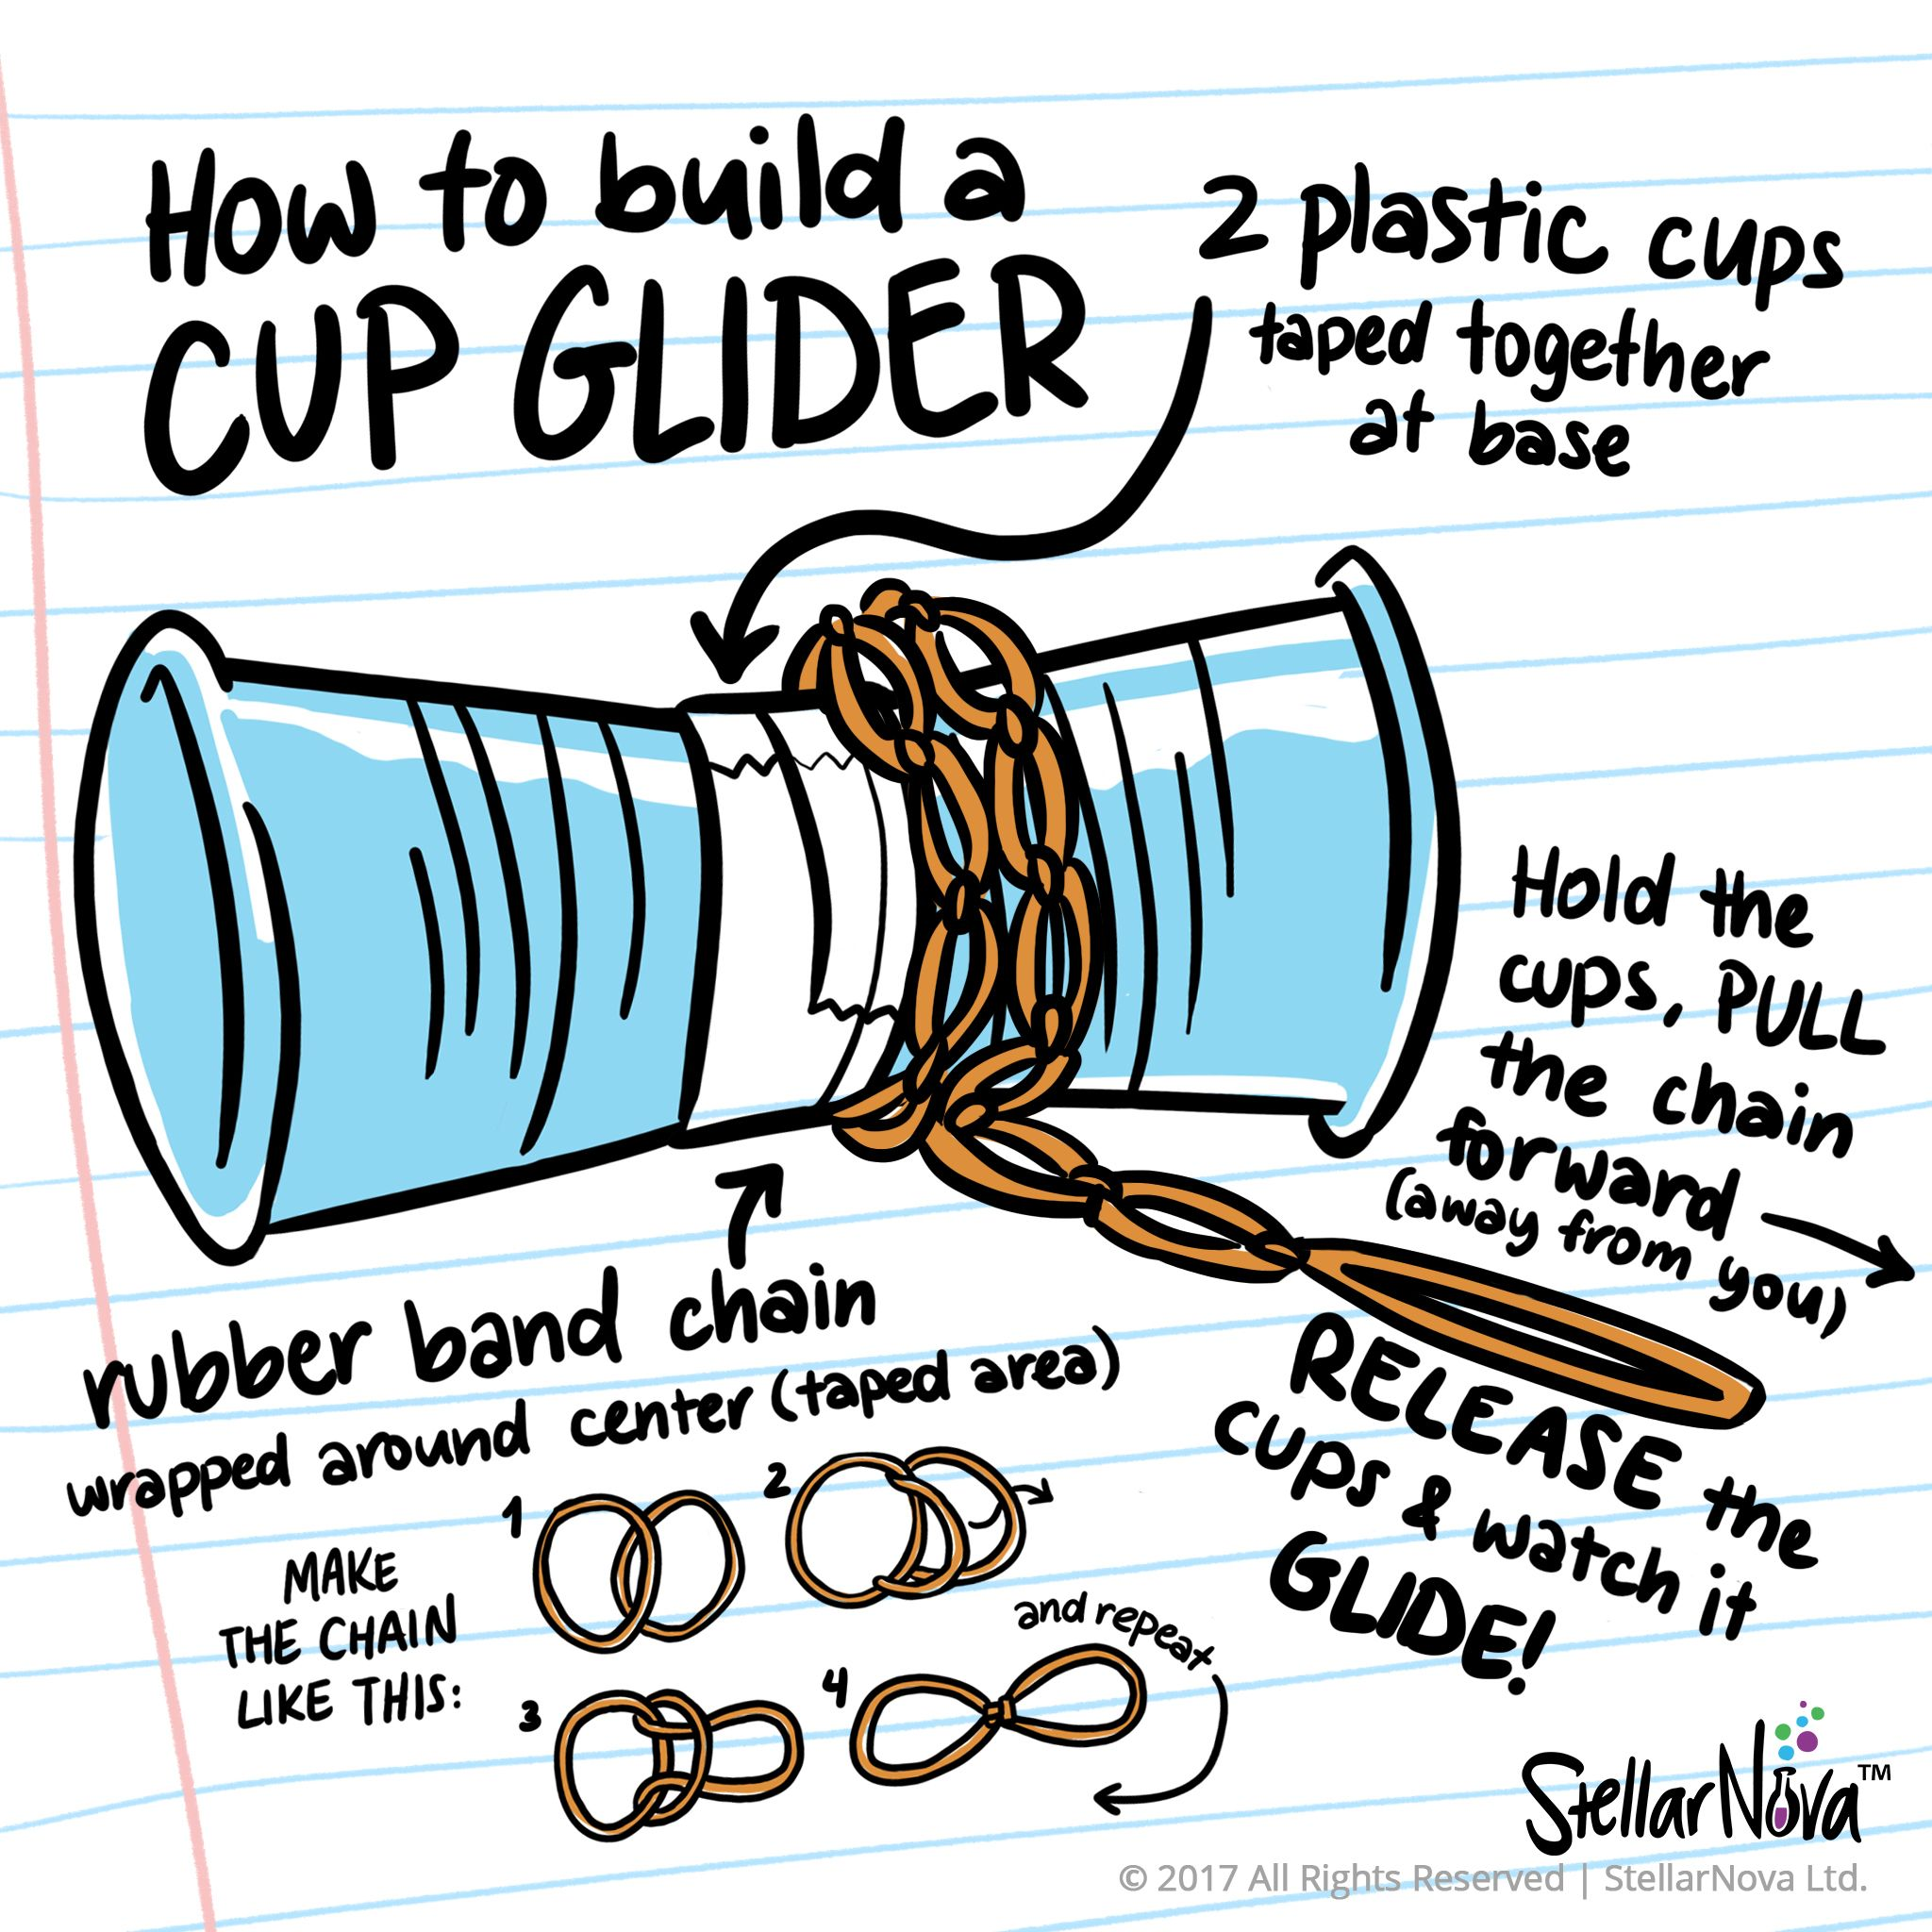 How To Build A Cup Glider Physics Learn The Magnus Effect And Mage Home Science Activity Squishy Circuits Light Up Your Play Doh Activities Do At Magical